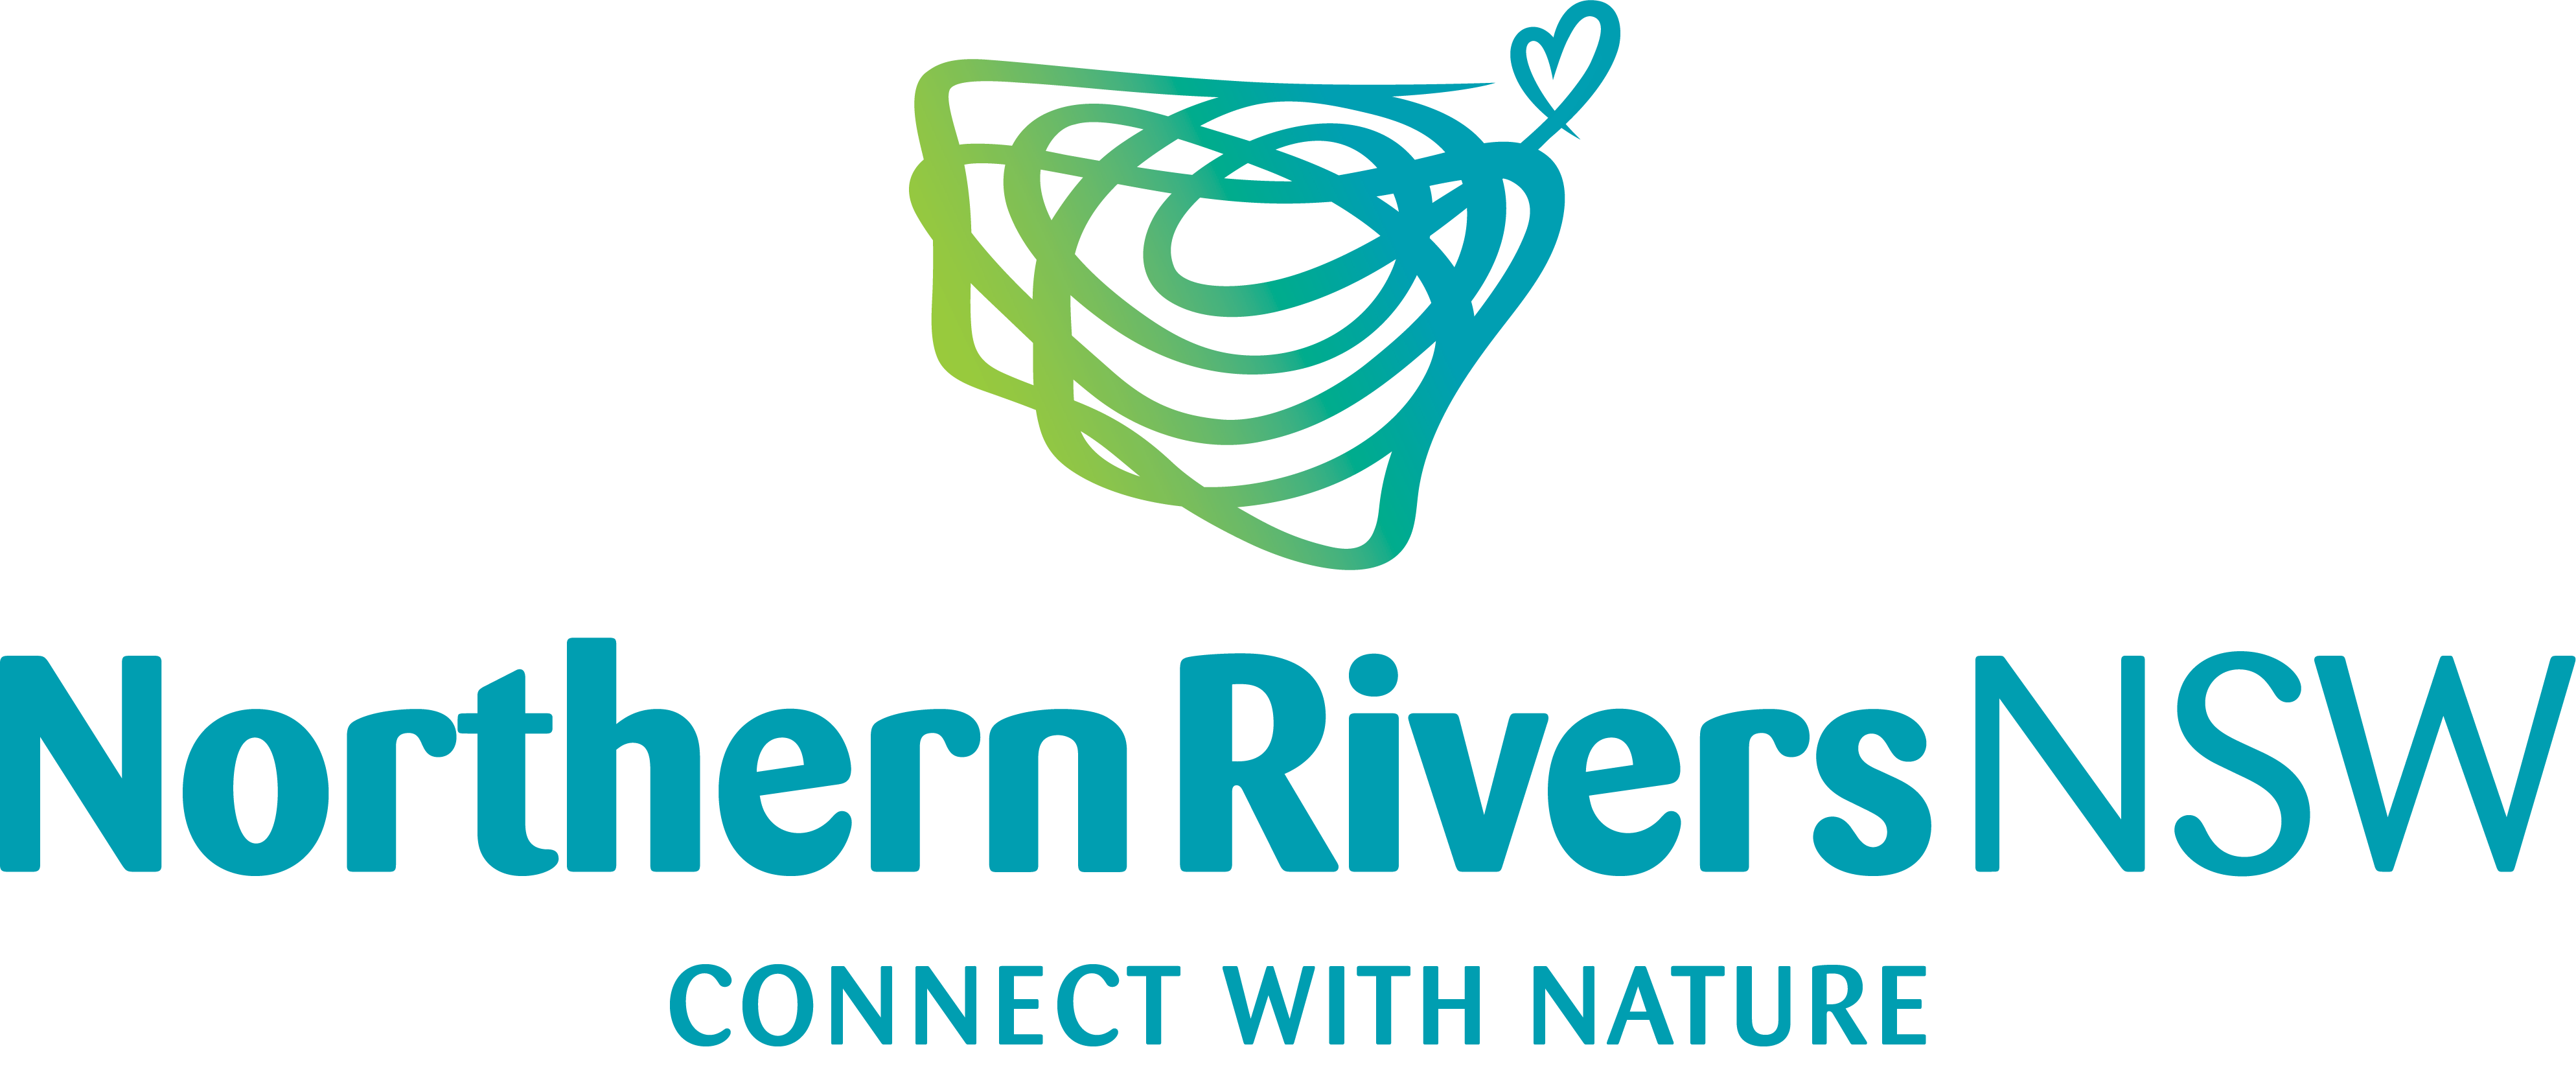 Northern Rivers NSW brand logo